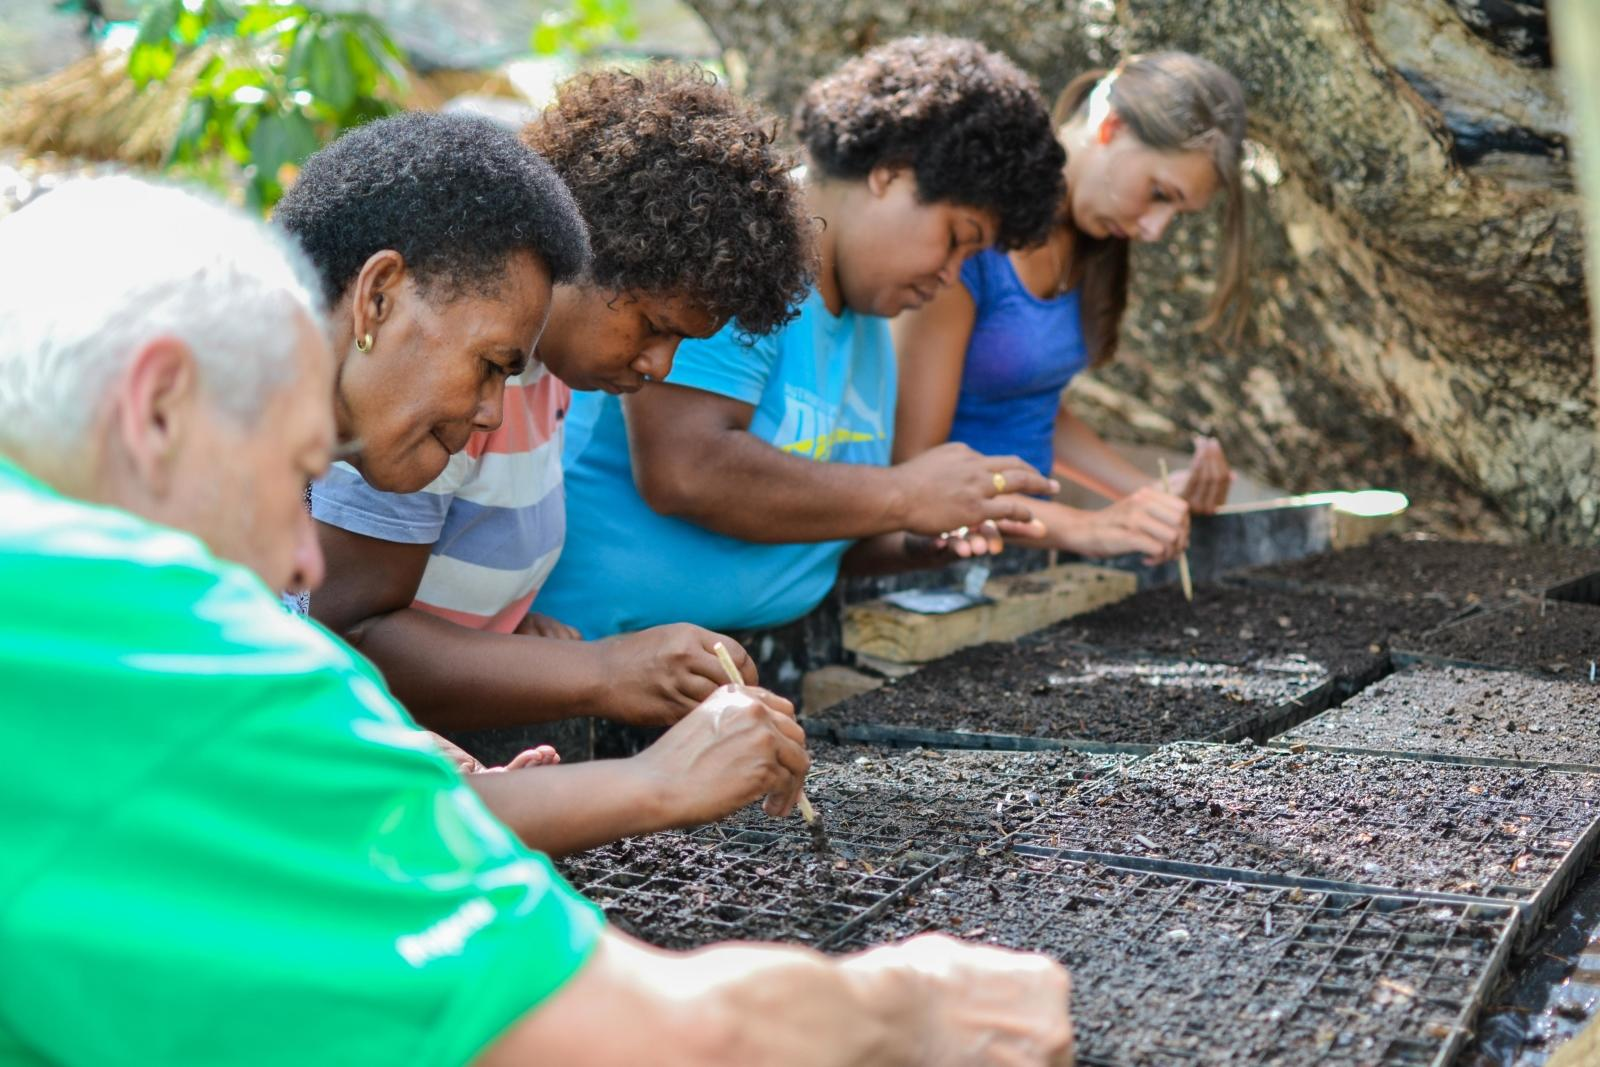 Senior volunteers planting seeds as part of conservation efforts in Fiji